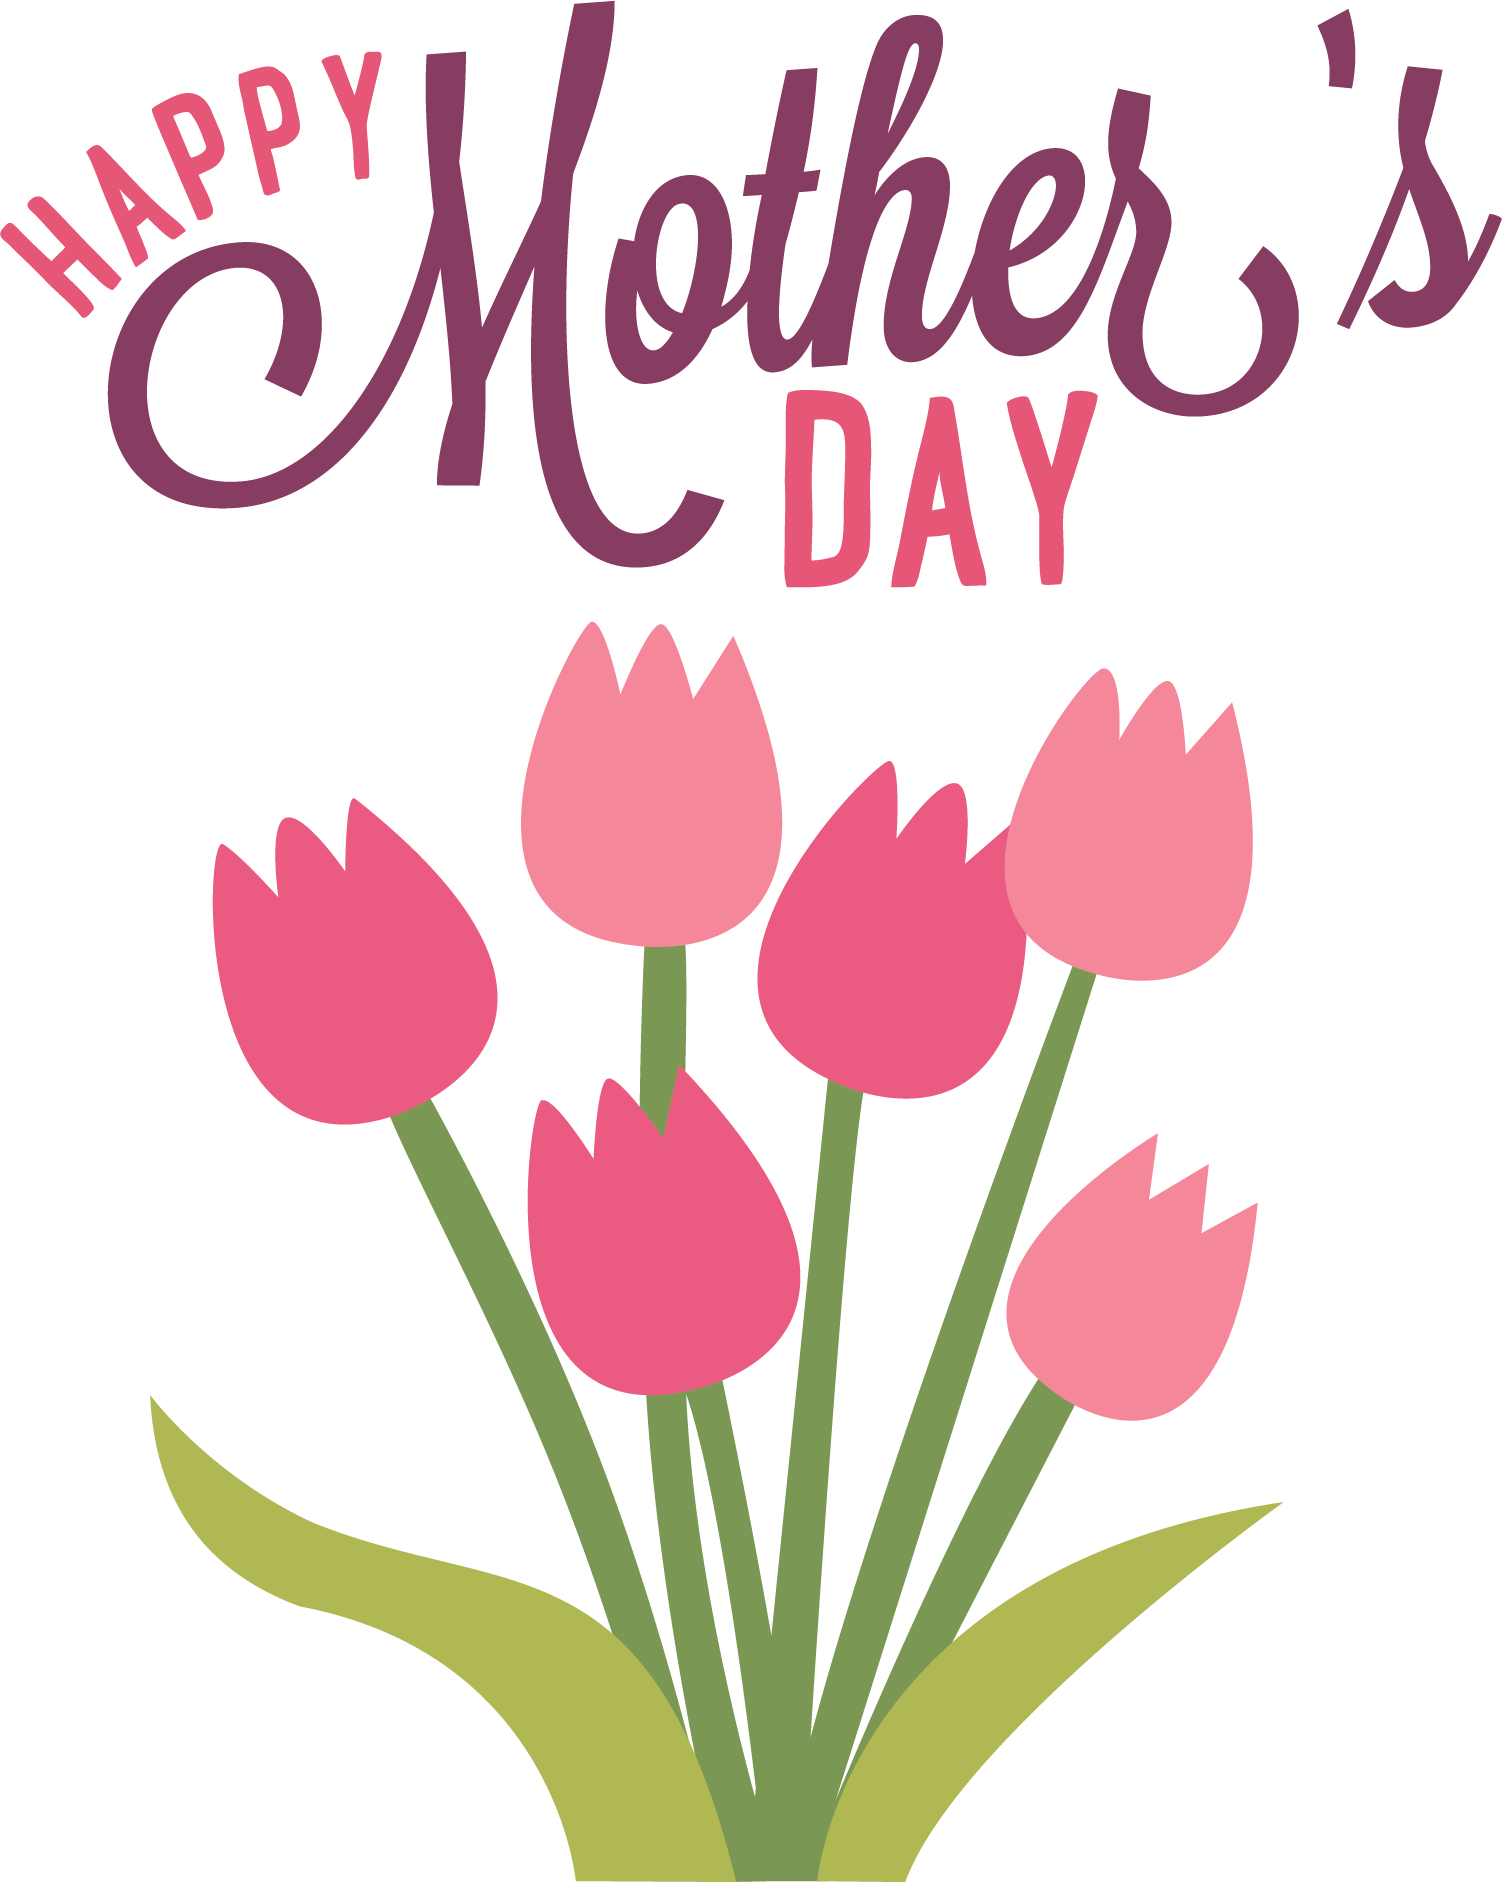 Download Motheru0027s Day PNG images transparent gallery. Advertisement - Mothers Day HD PNG